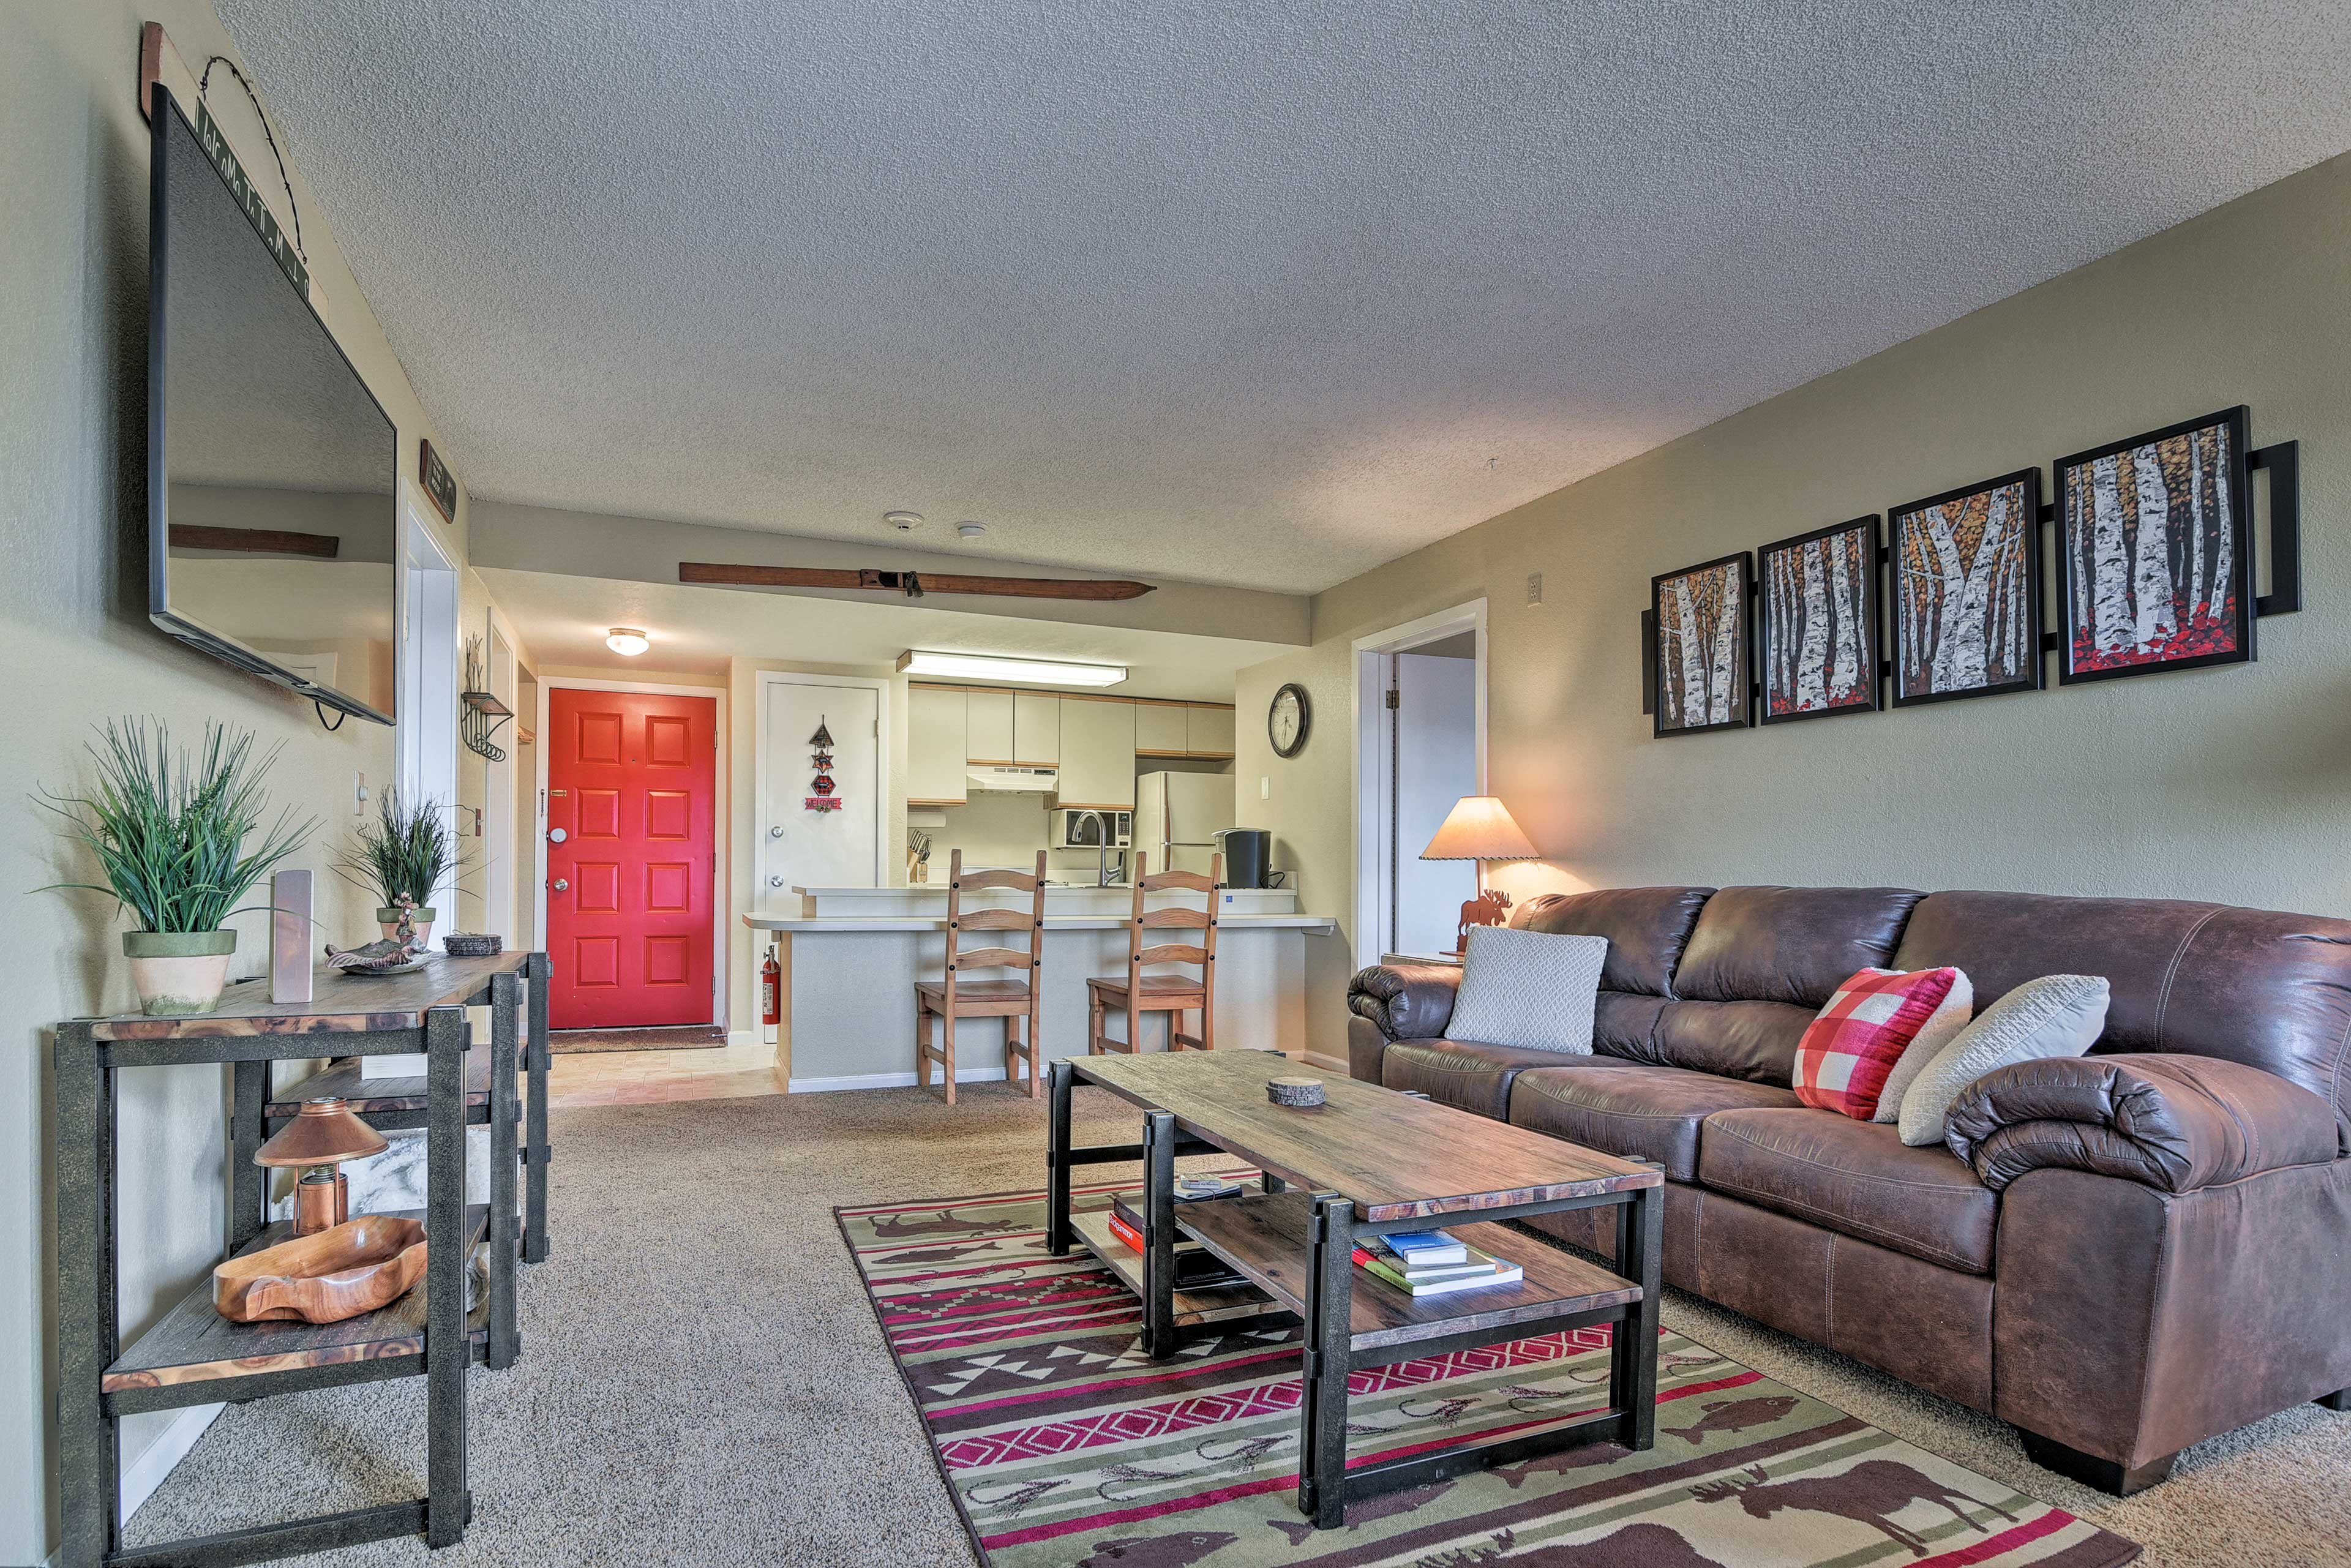 This condo can accommodate up to 8 guests.